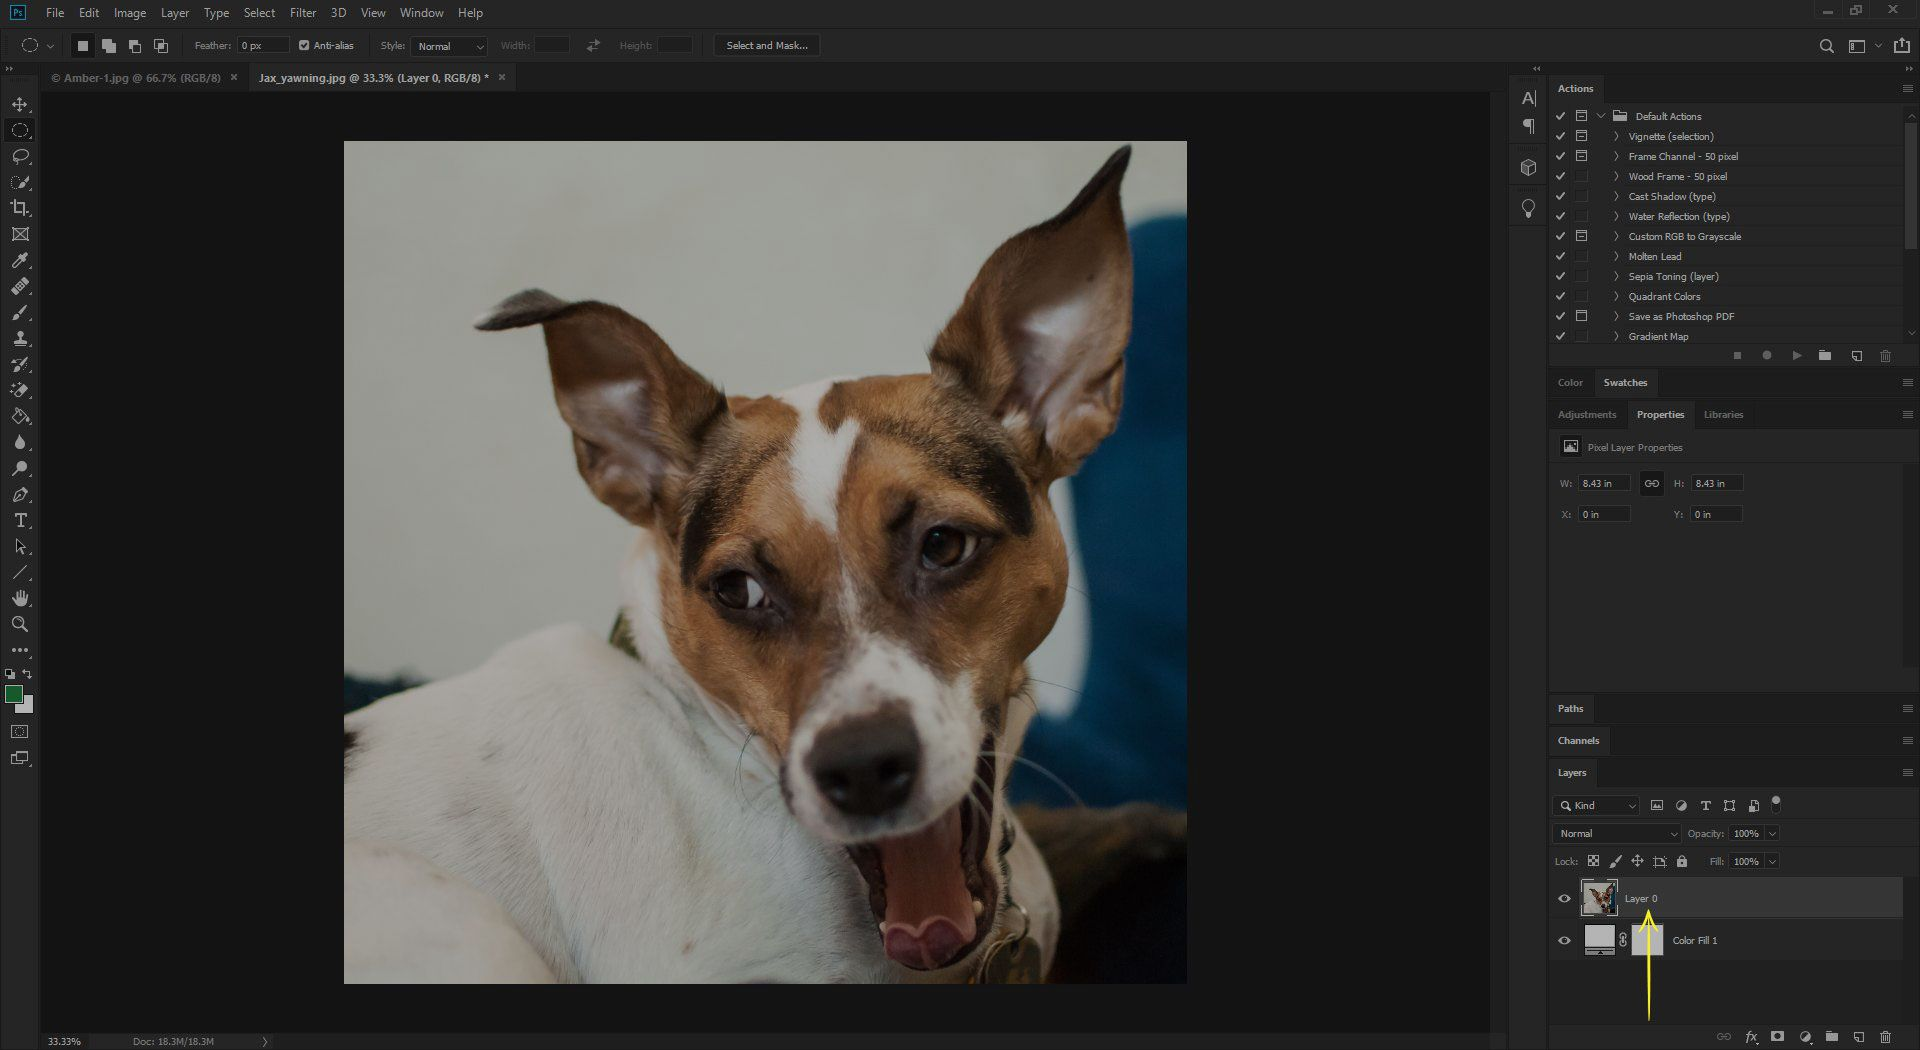 Drag the image layer to the top